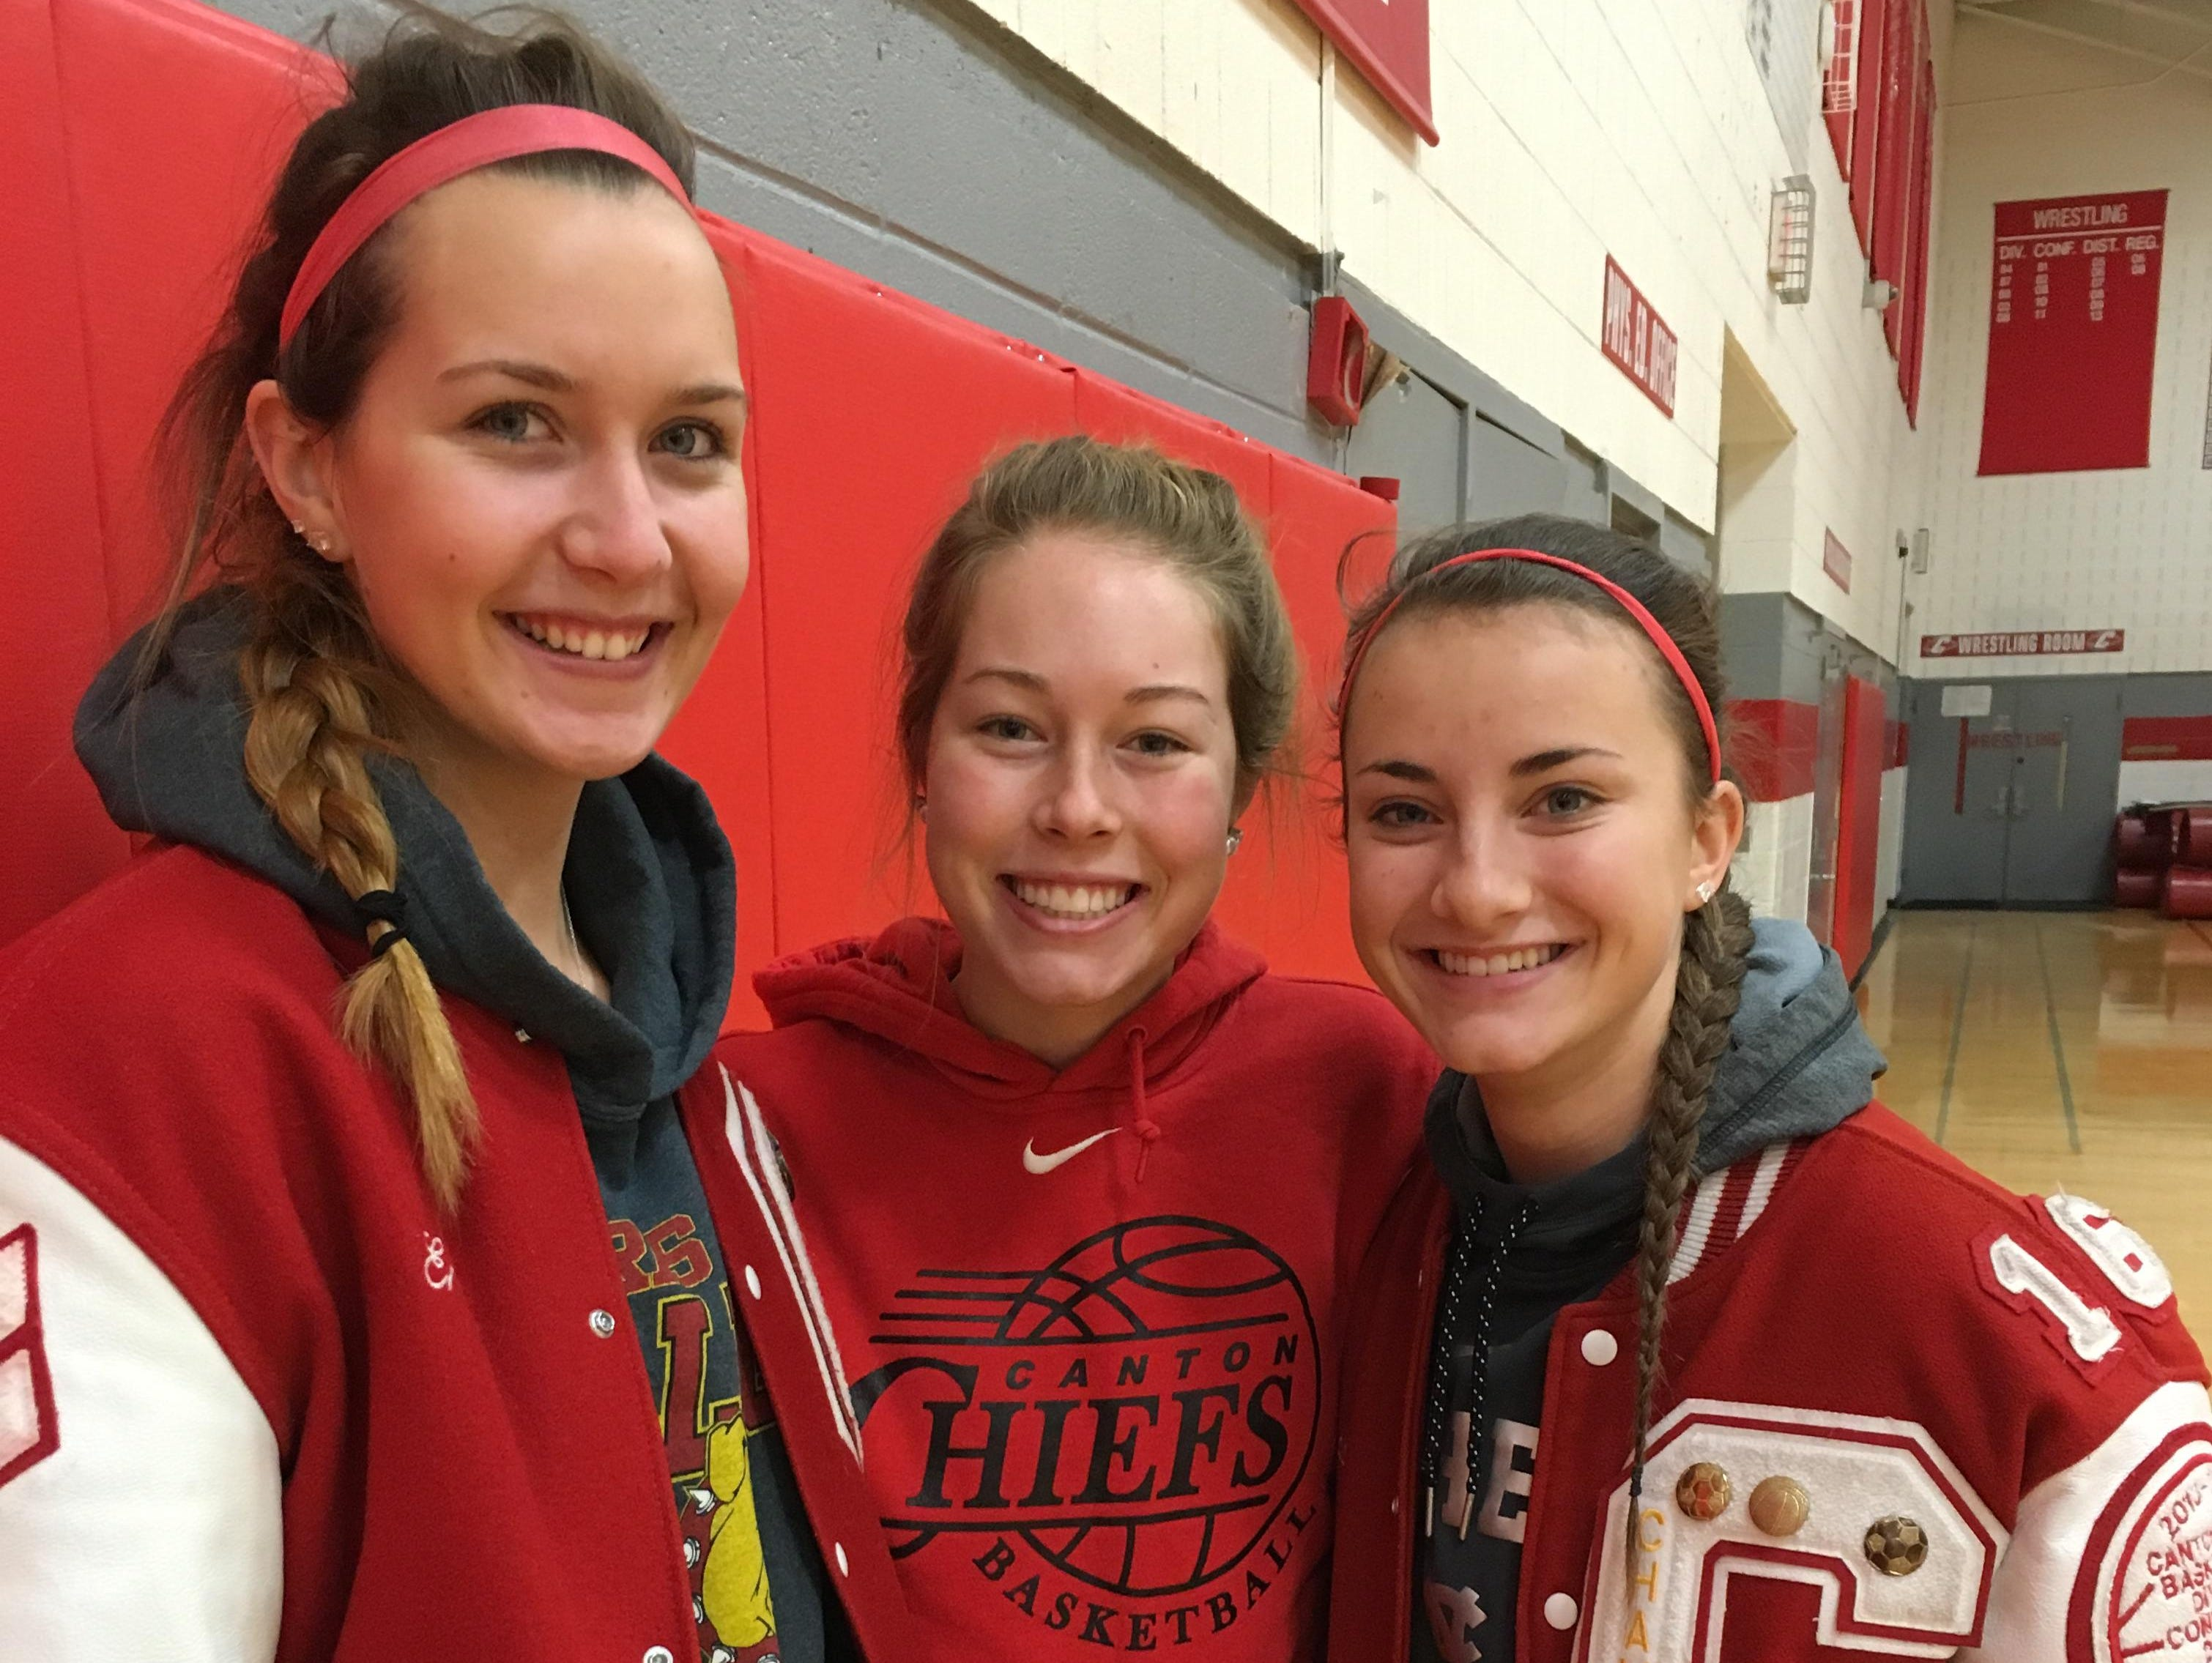 Leading the Canton Chiefs on and off the basketball court will be captains (from left) Erin Hult, Natalie Winters and Madison Archibald.